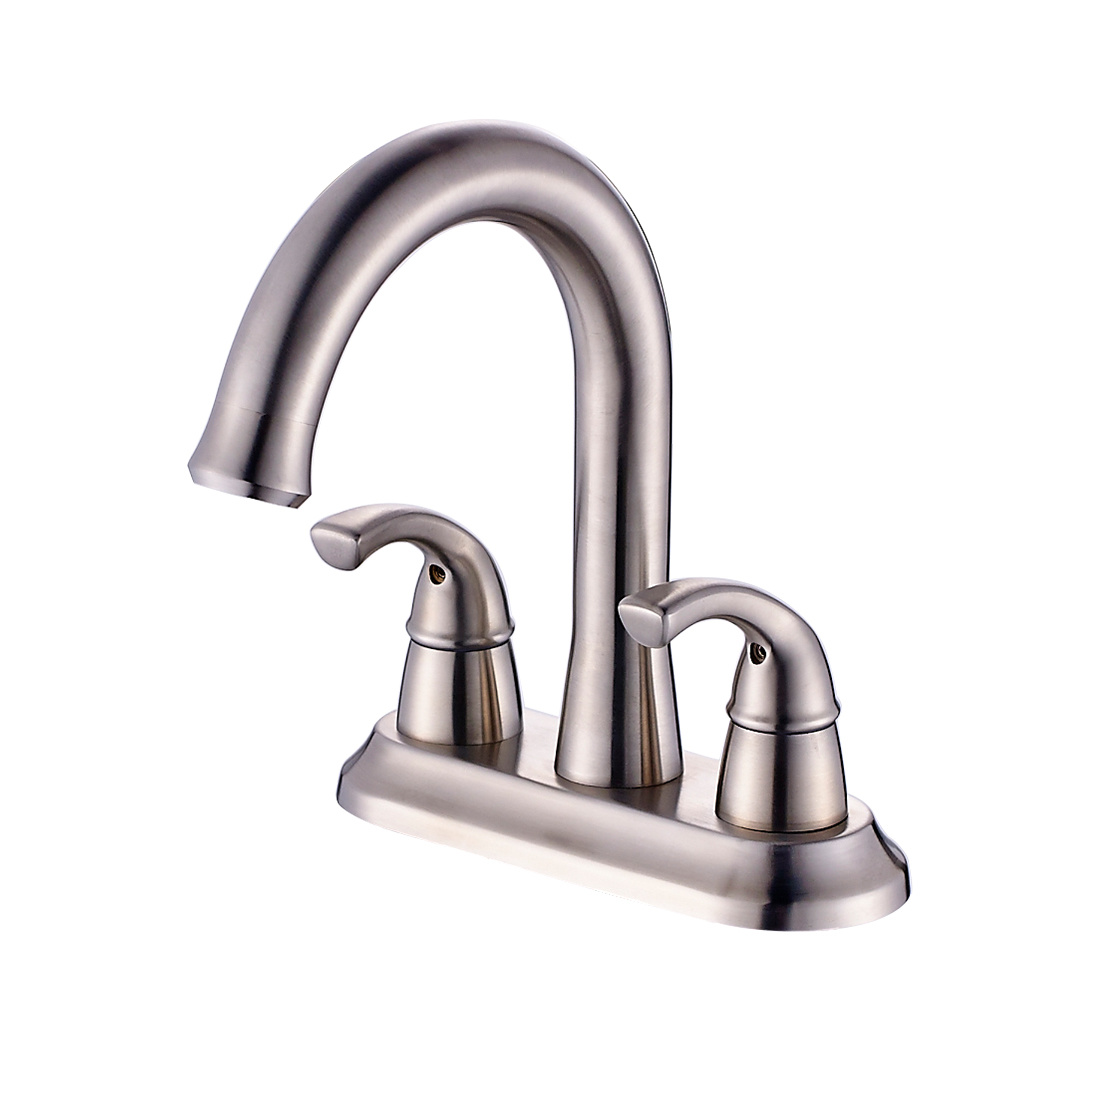 China FLG Commerical Swivel Spout Bathroom Vessel Sink Faucet Stainless  Steel   China Basin Faucet, Lavatory Faucet